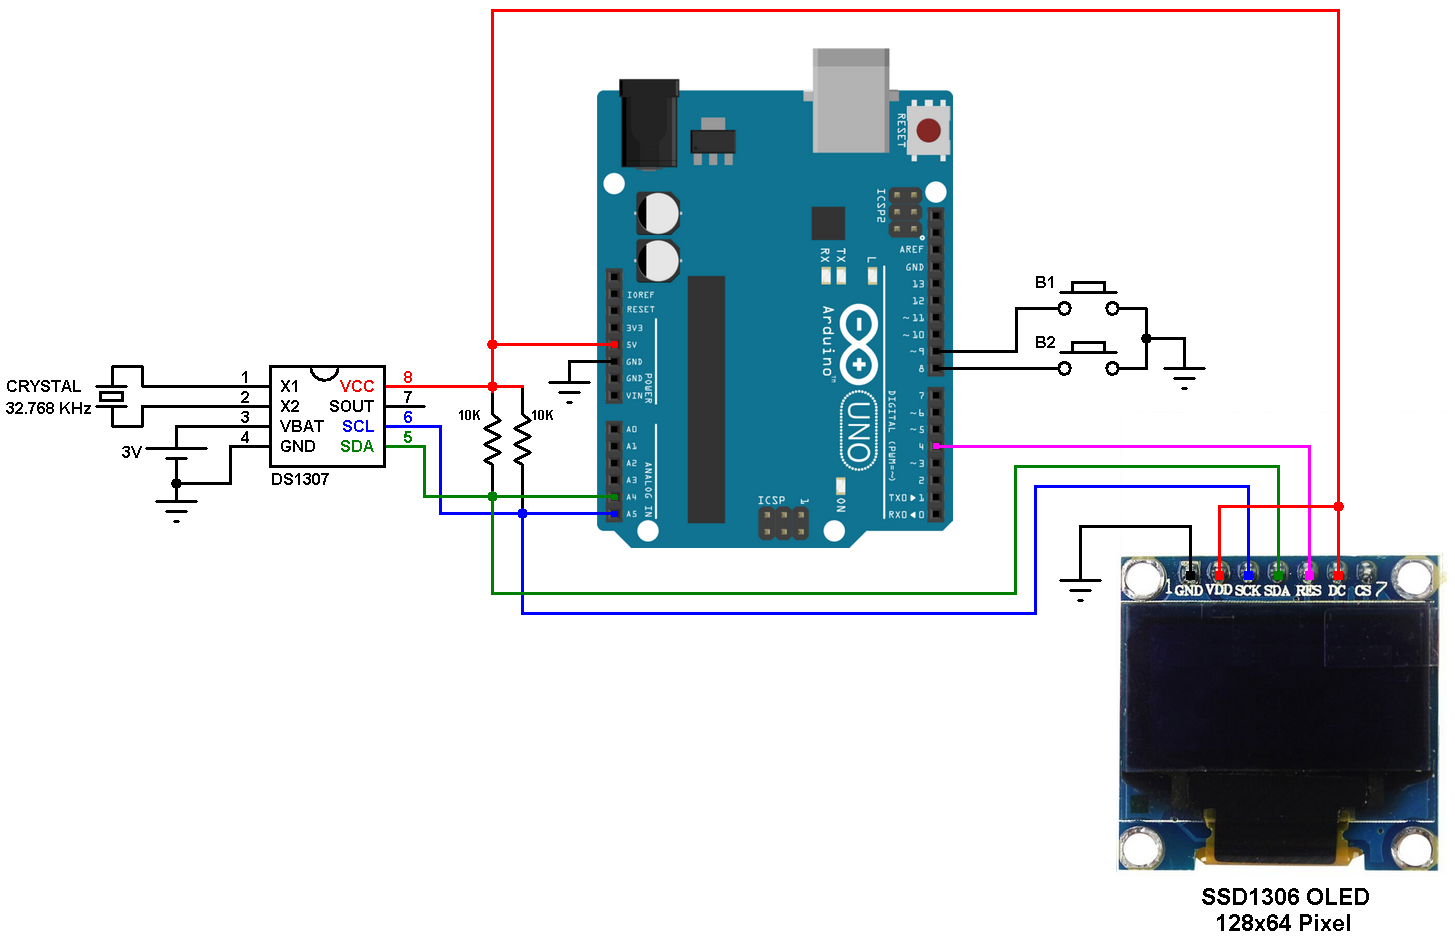 Arduino real time clock using DS1307 and SSD1306 OLED